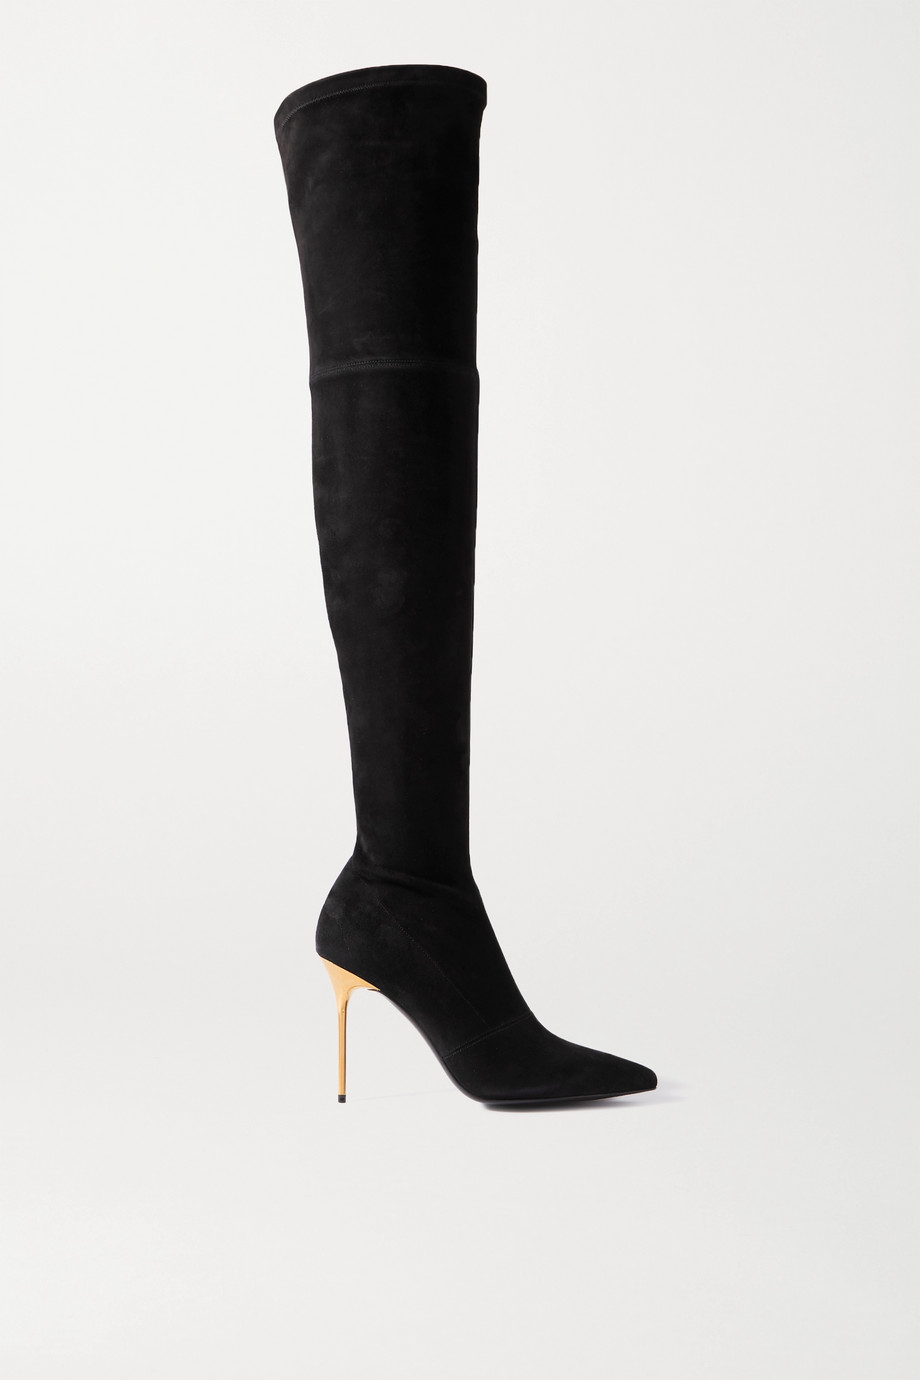 Balmain Suede over-the-knee boots